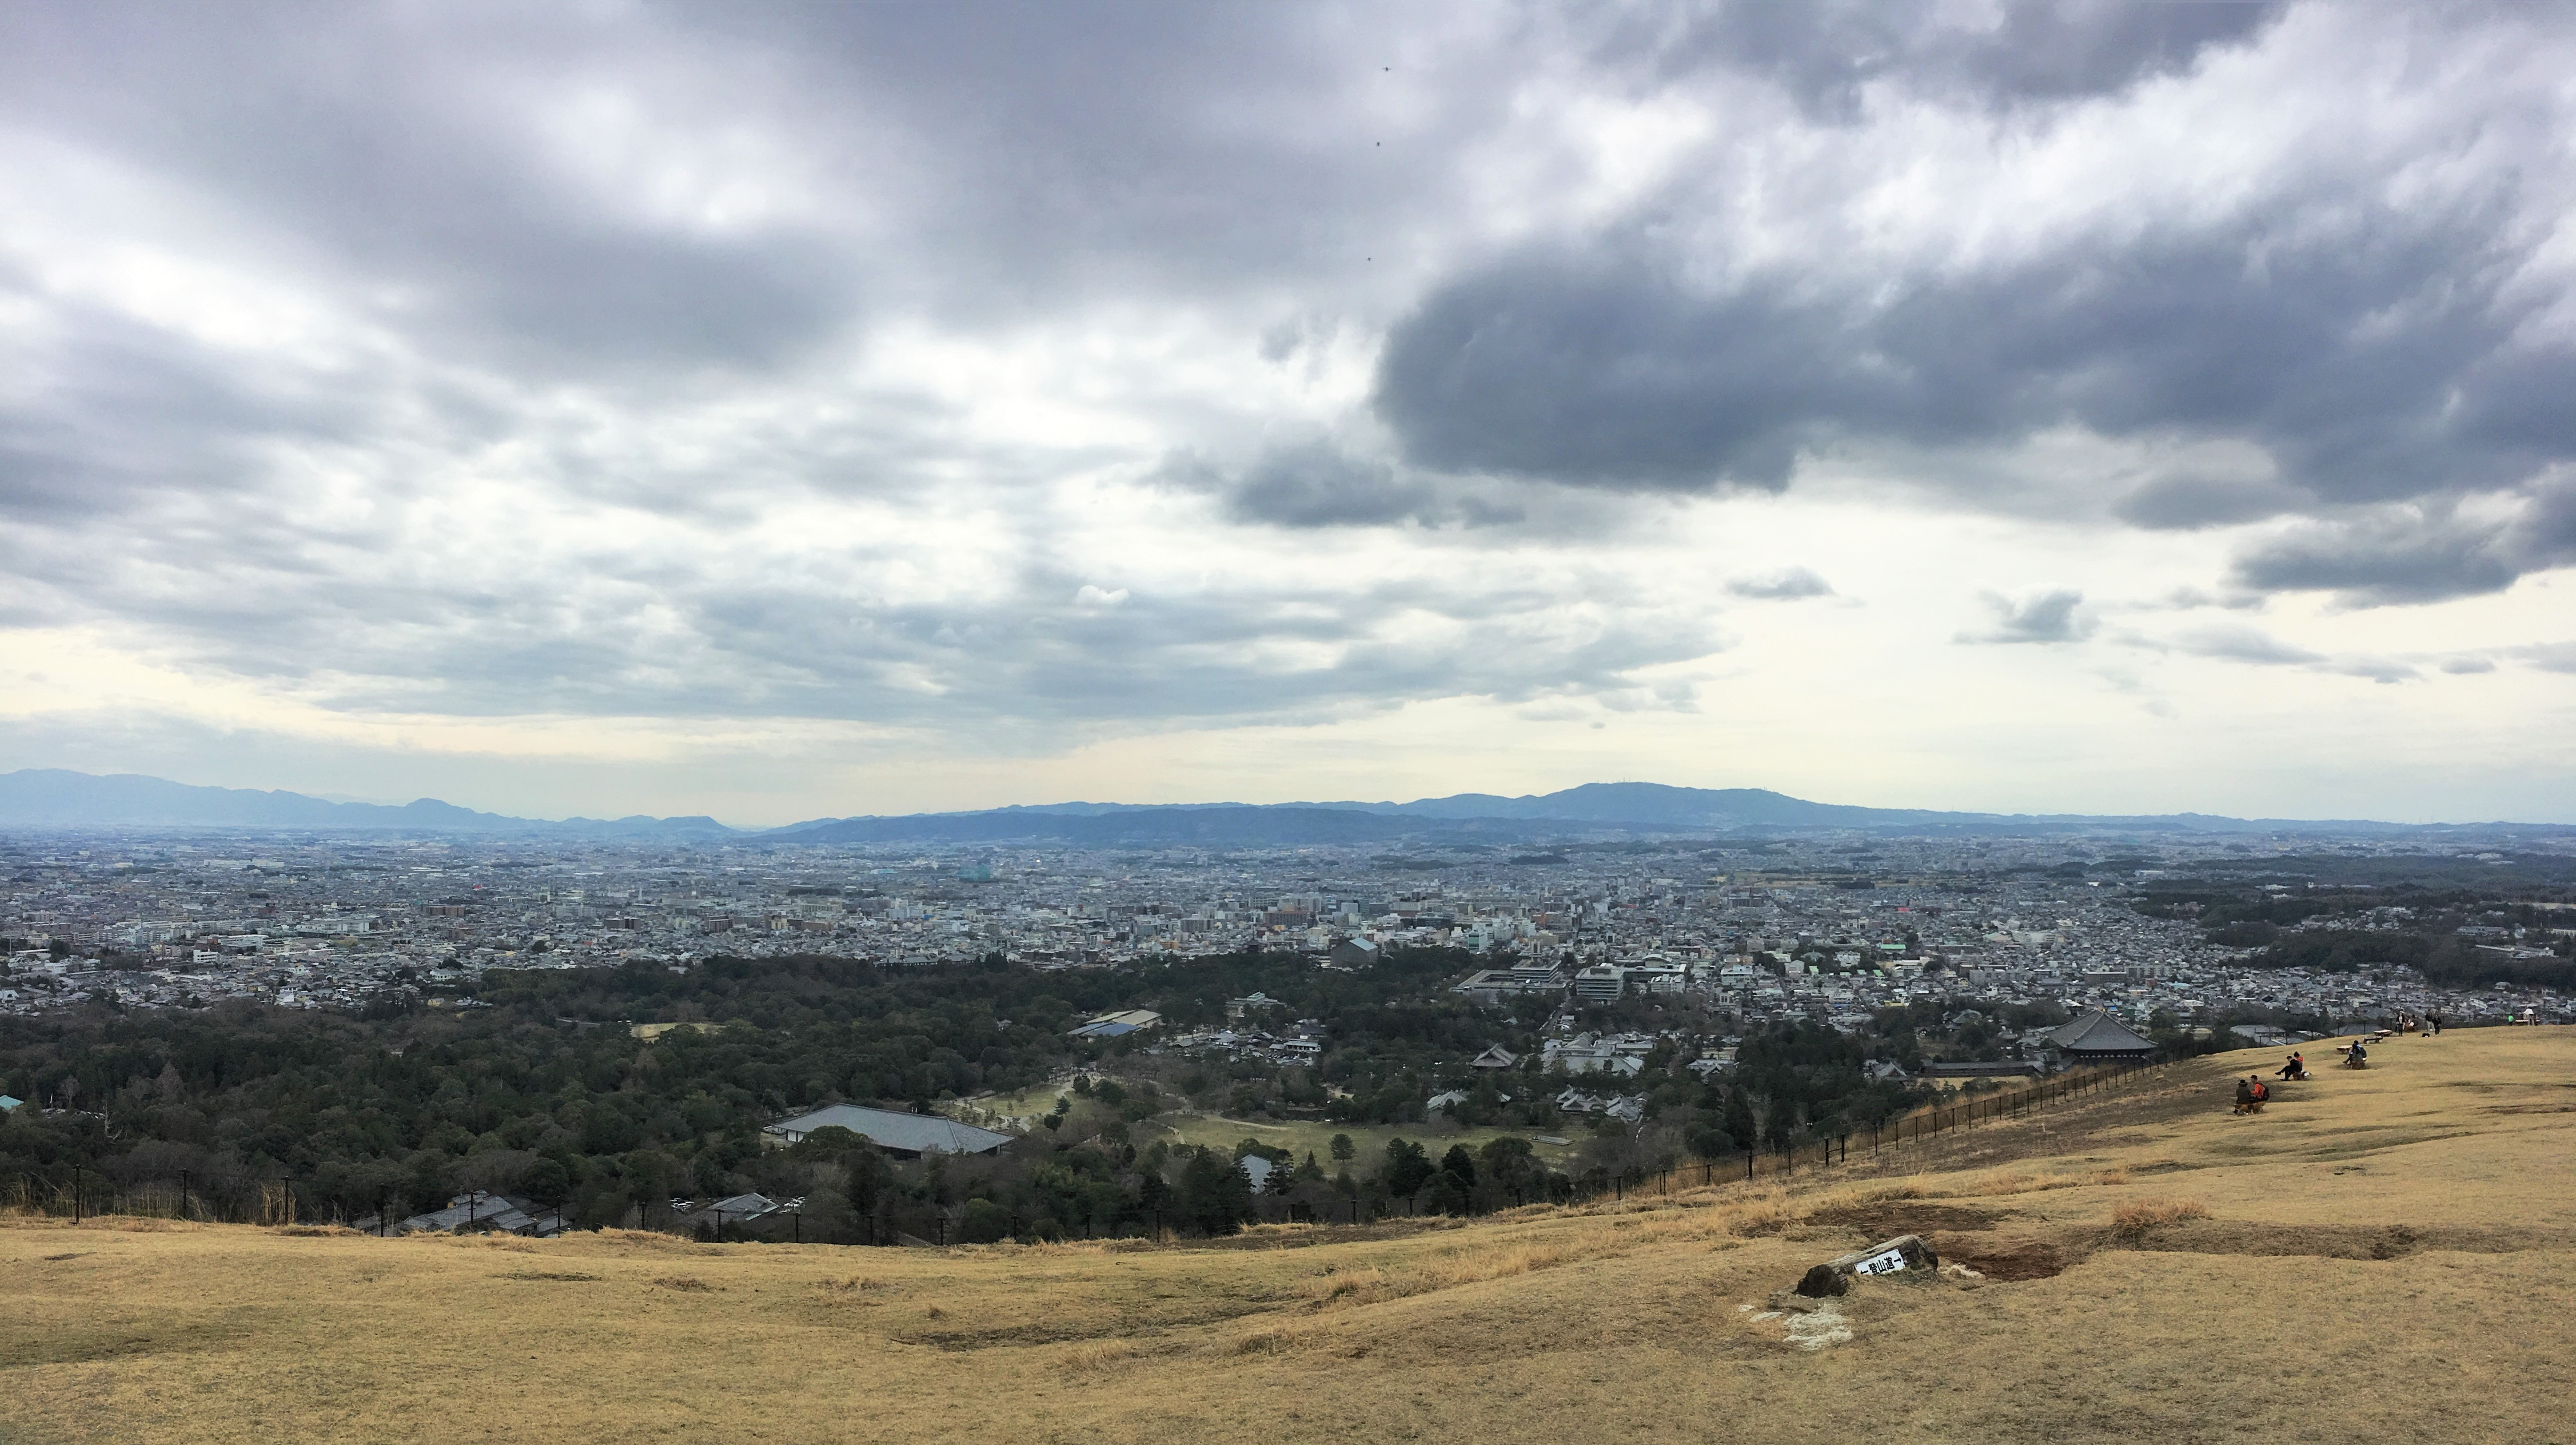 panoramic view from the top of mt wakakusa overlooking the city of Nara